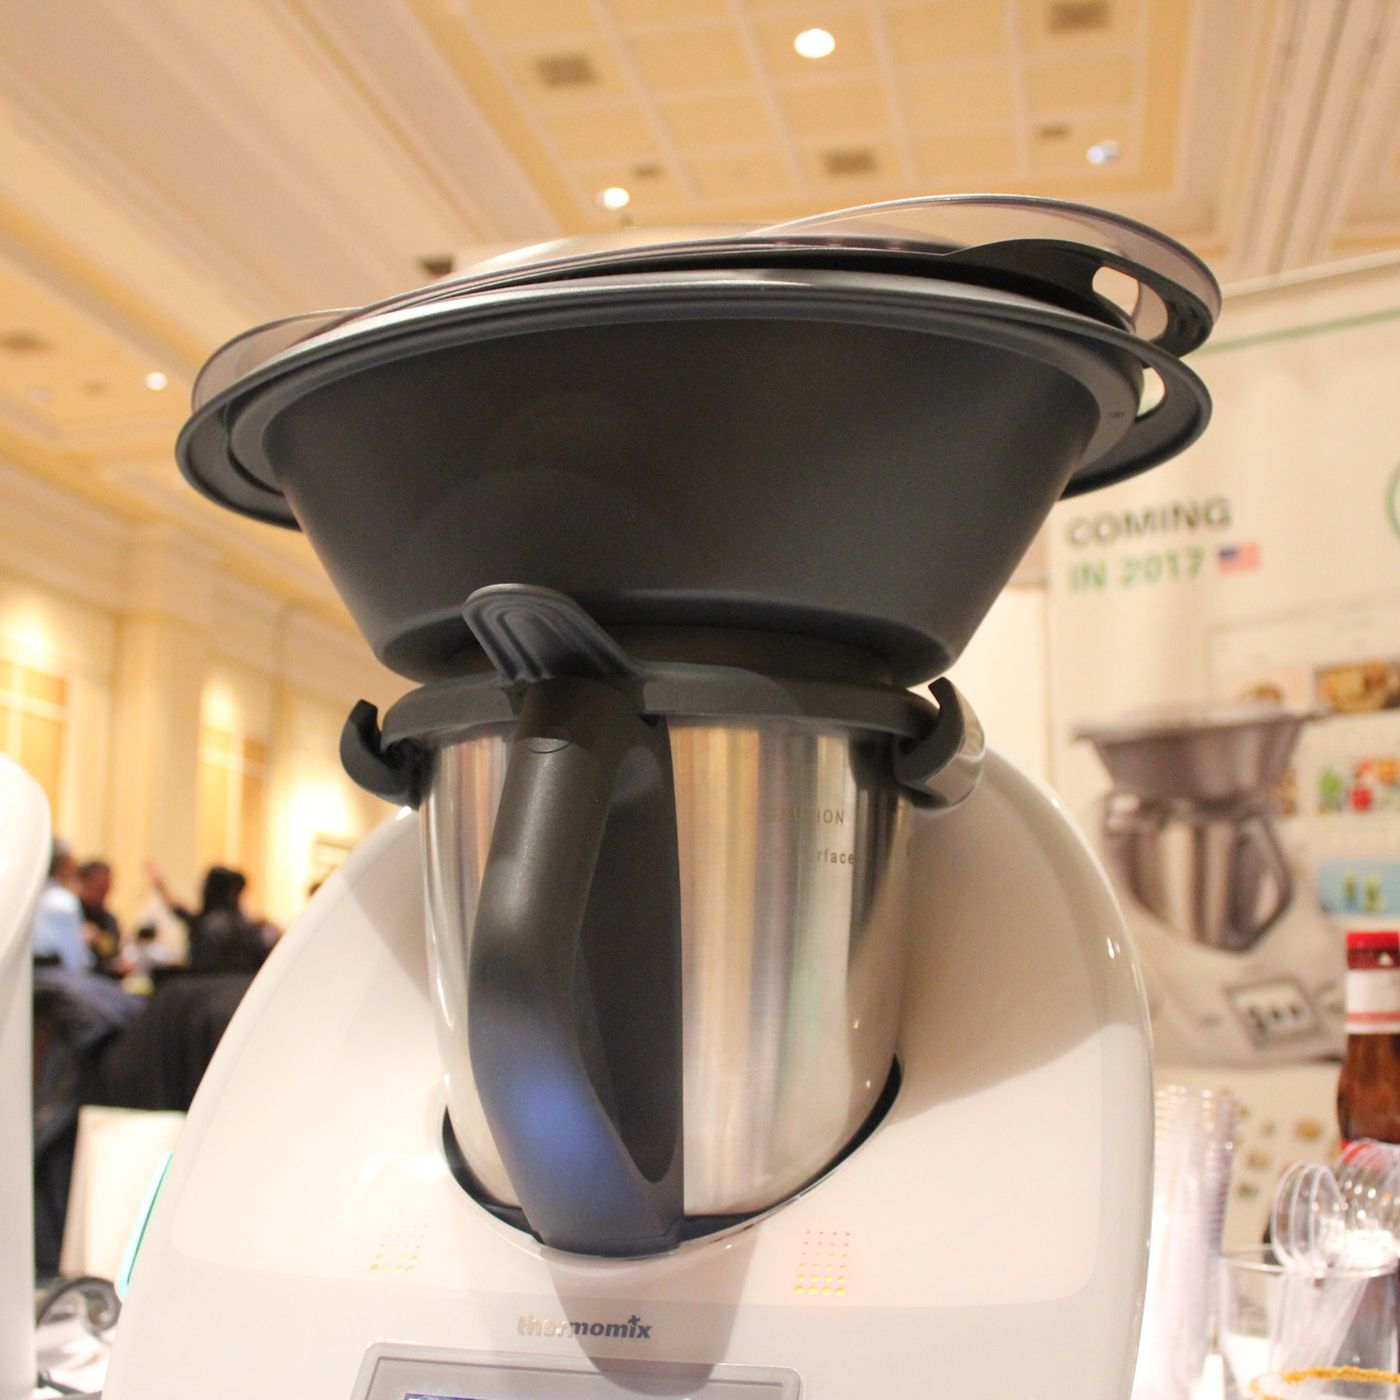 Cooking Chef Ou Thermomix Avis thermomix is the $1,299 'digital kitchen' for that tiny